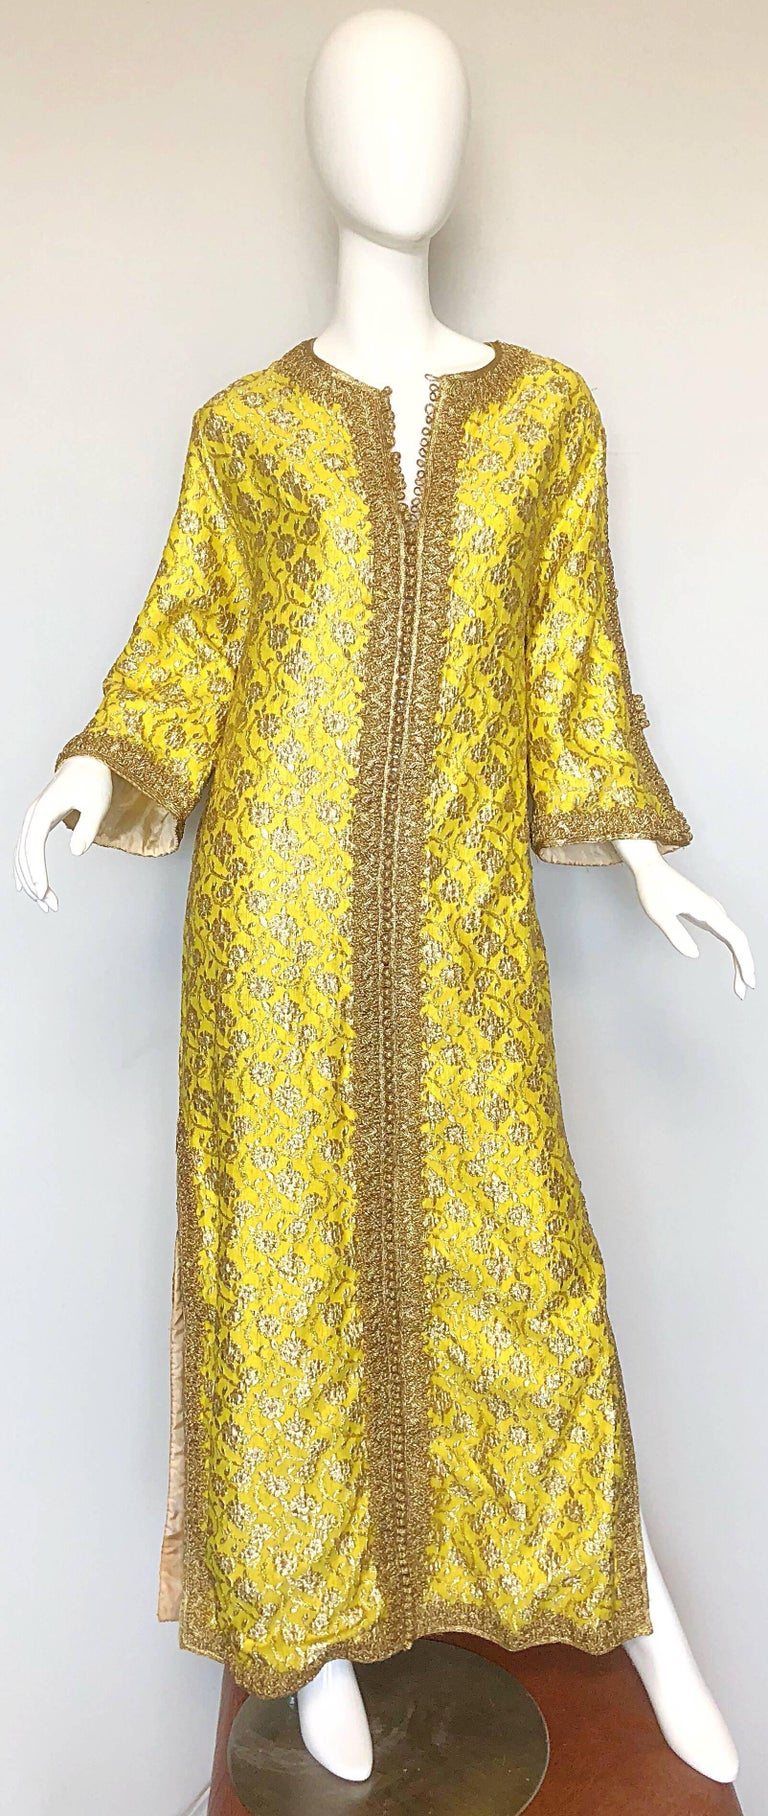 Amazing 1960s Moroccan couture yellow and gold silk brocade kaftan gown! Features a wonderfully hand stitched silk brocade. Gold embroidered trim down the front center features hundreds of gold hand woven functional buttons. Open seams on the outter